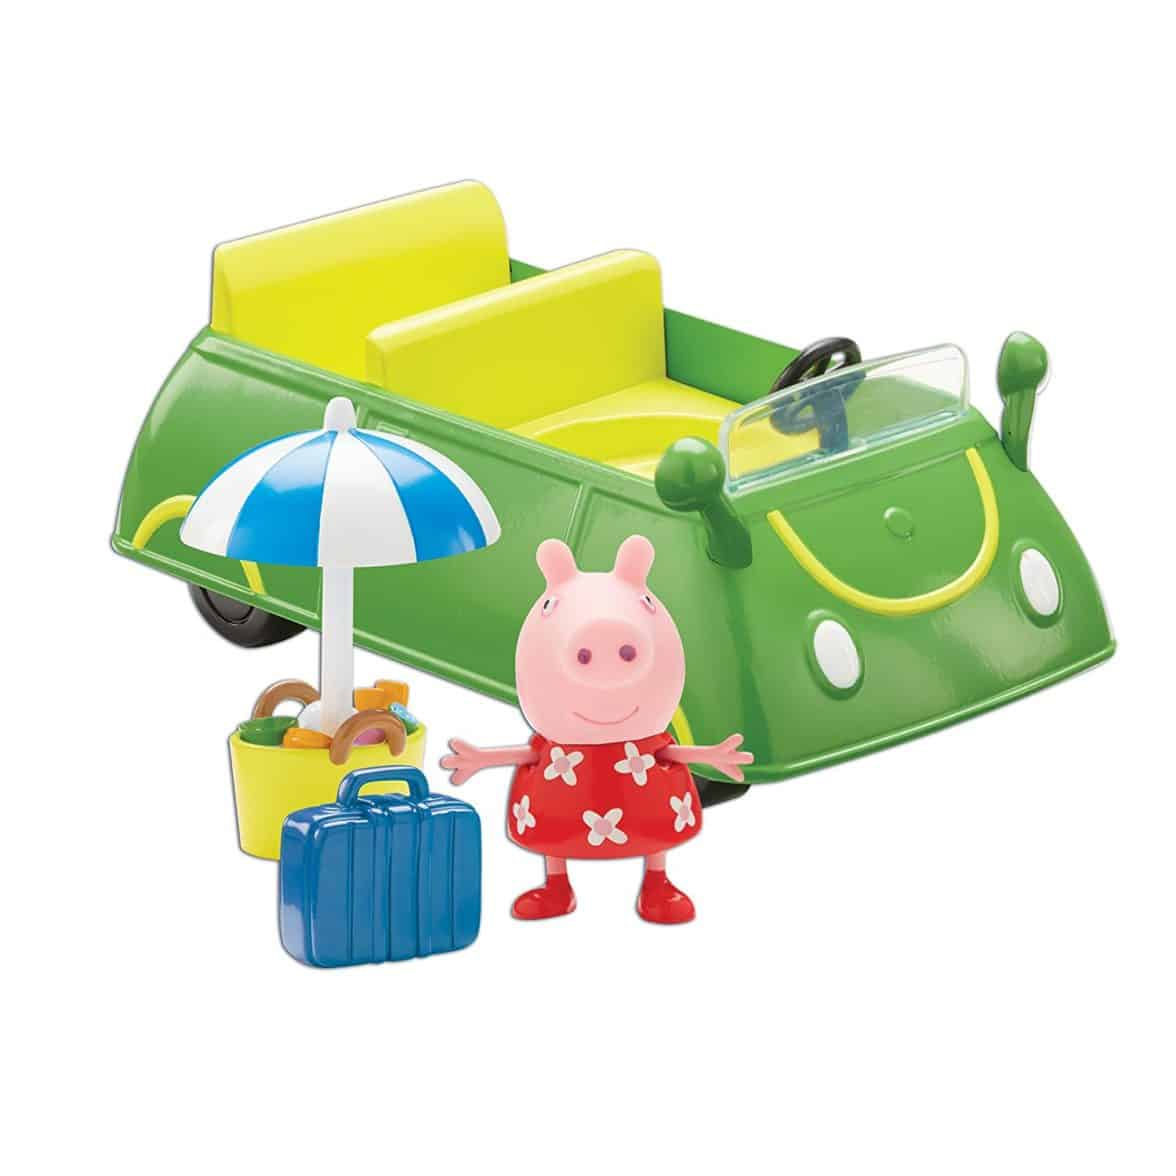 Peppa Pig Holiday Time Holiday Sunshine Vehicle Car With Accessories